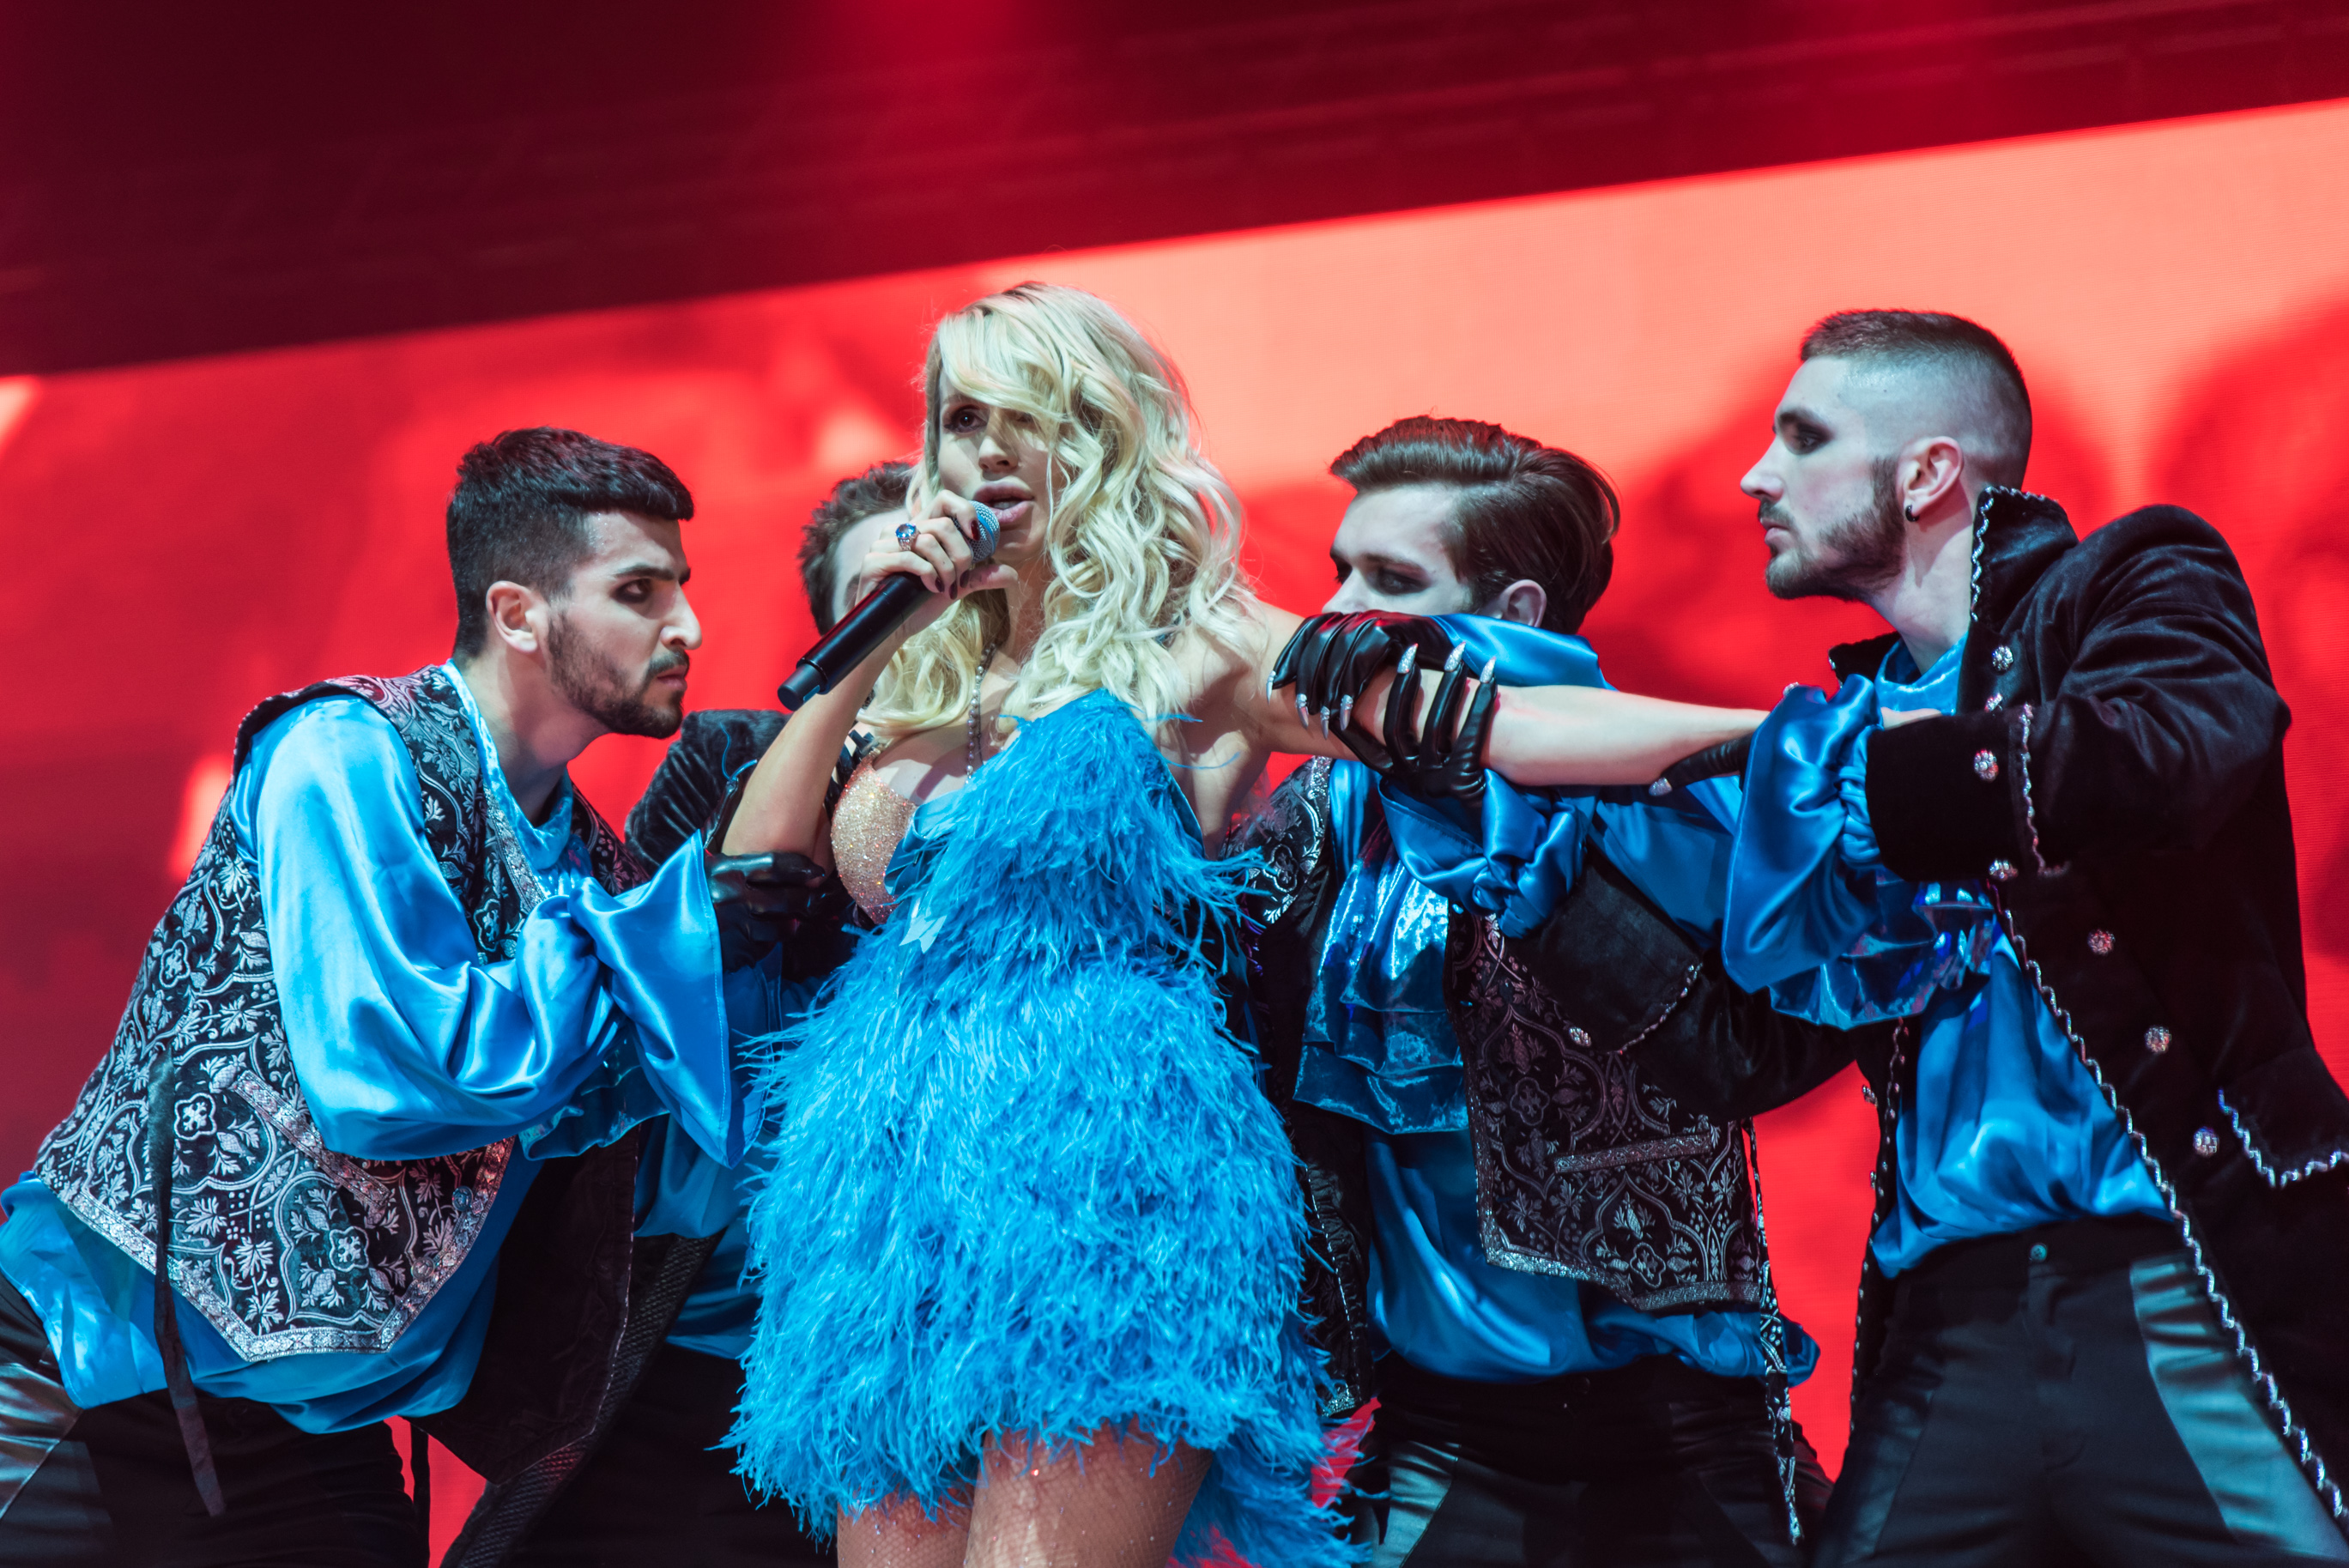 Pugacheva looked at the performance of Loboda in Jurmala 21.08.2018 44